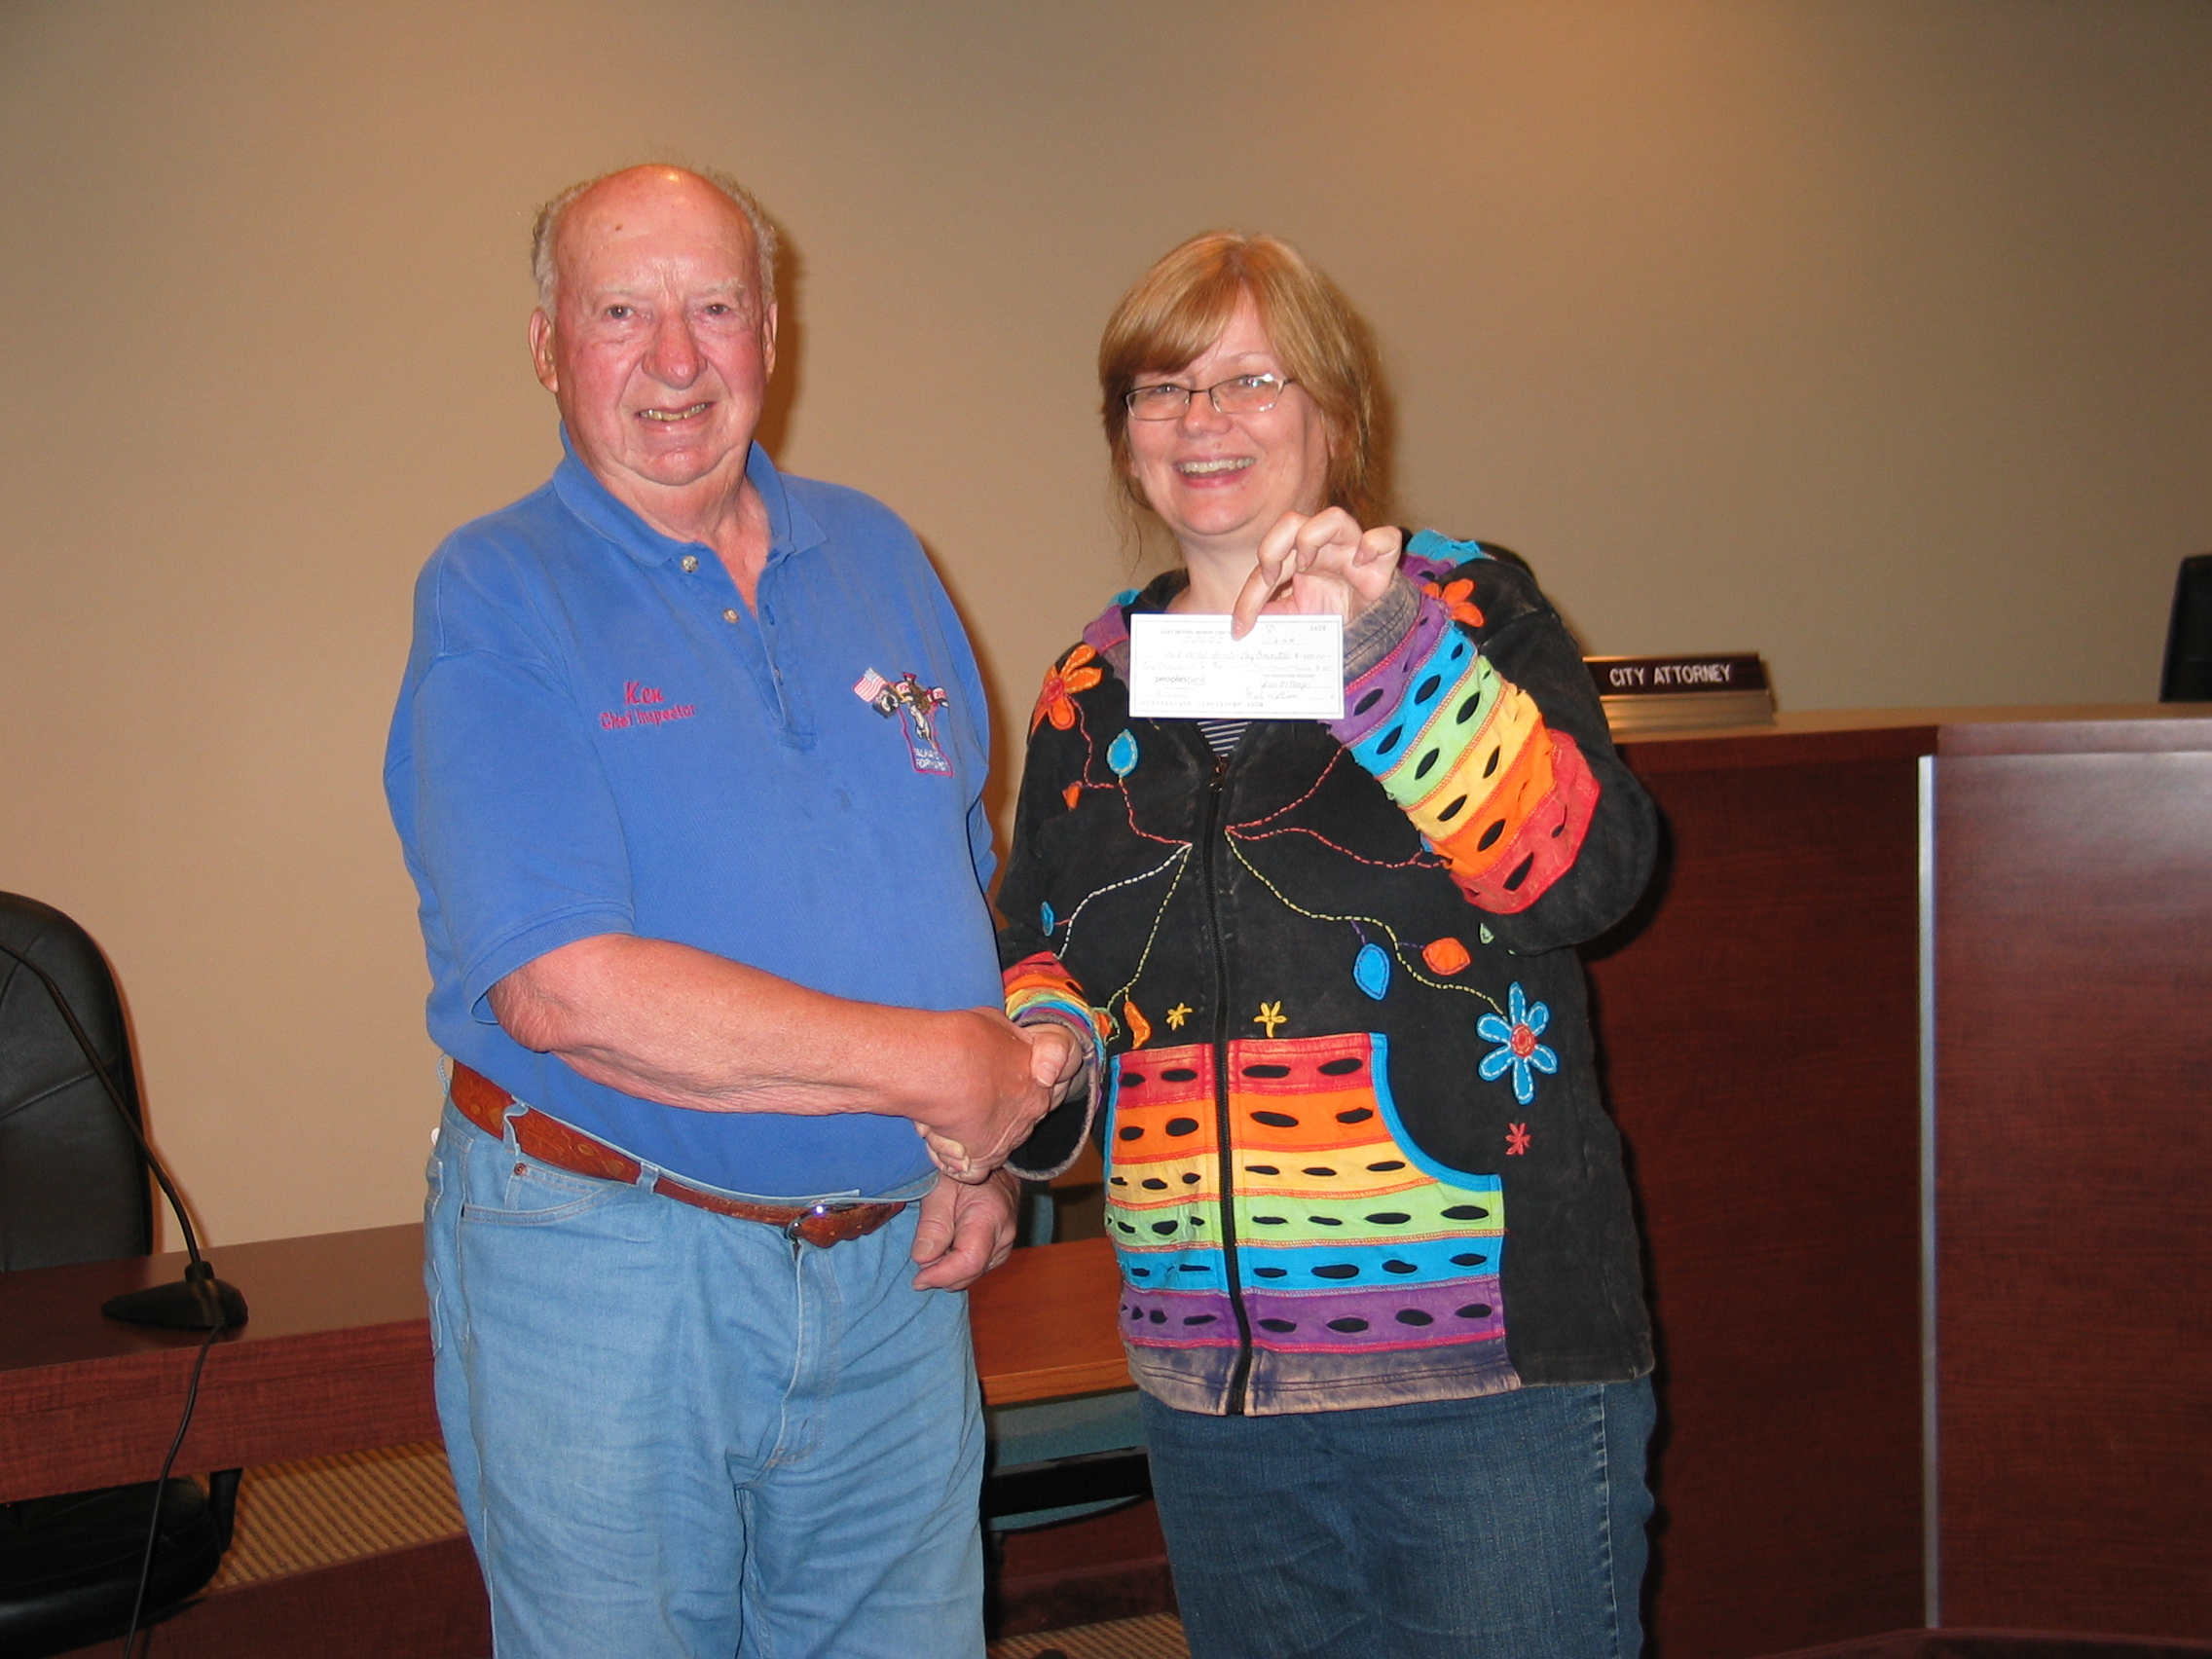 President Ken Langmade presenting donation check to Denise Lachinski for Booster Days.